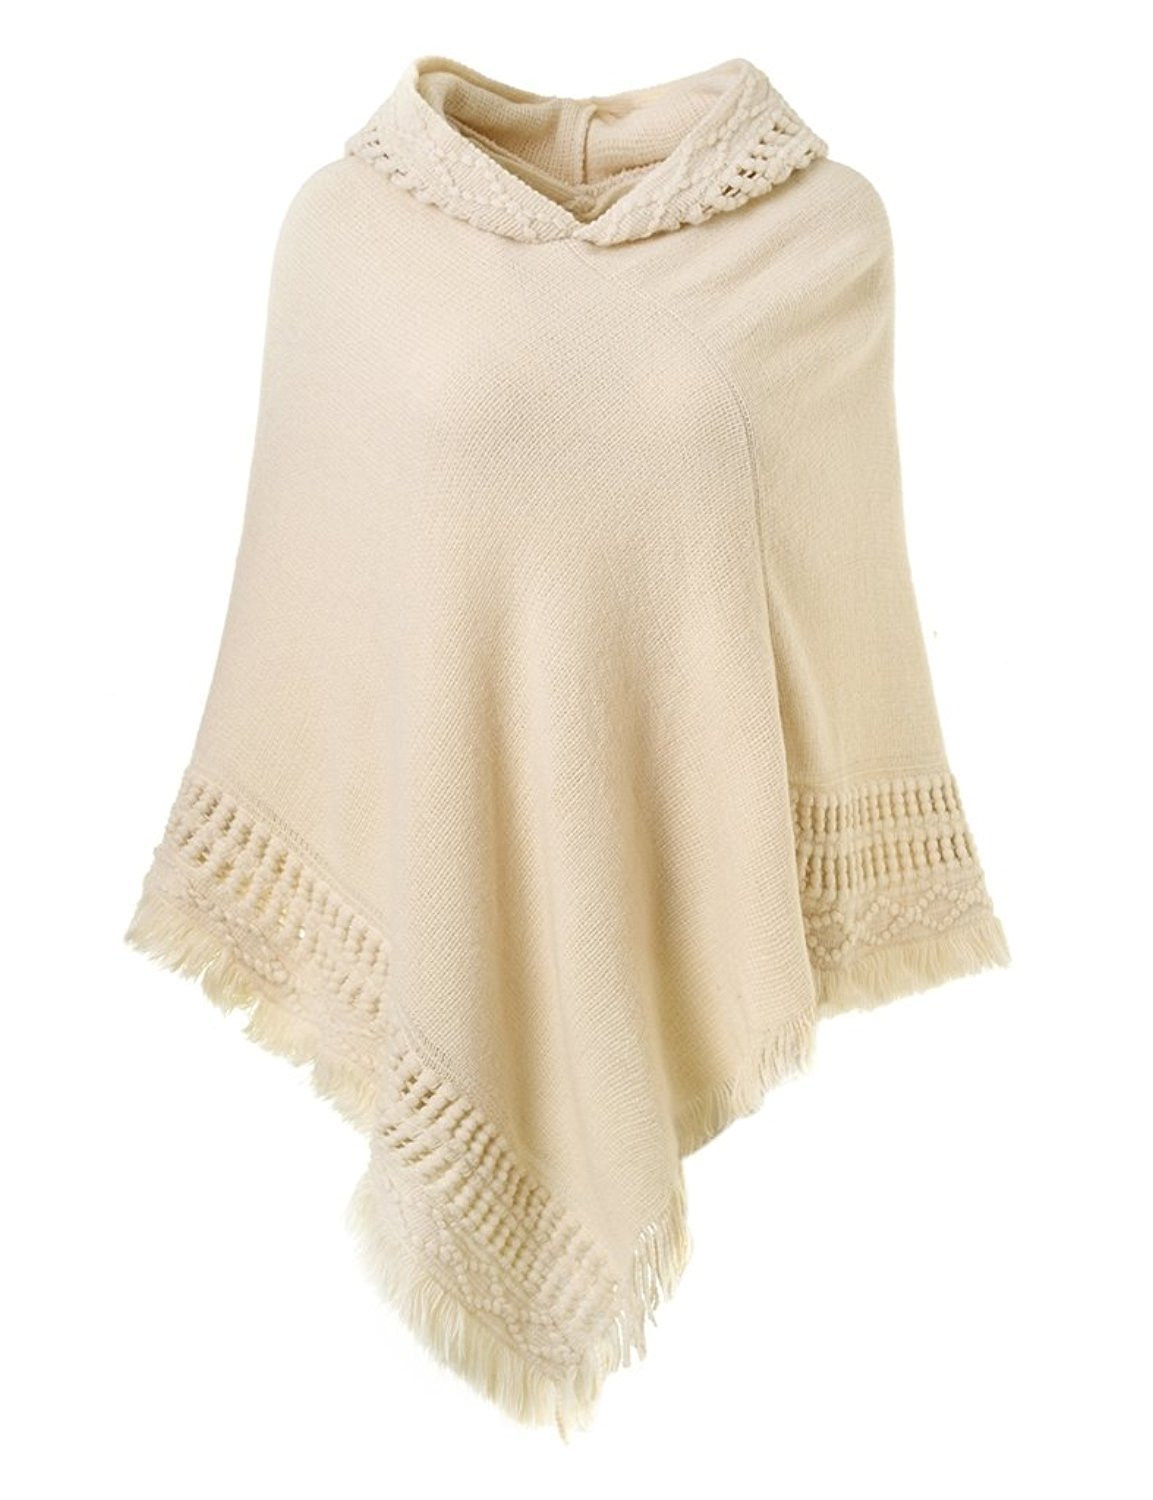 Sefilko Womens Knitted Hooded Poncho Tops Shawl Cape Batwing Blouse With Fringed Sides For Lady (Beige)